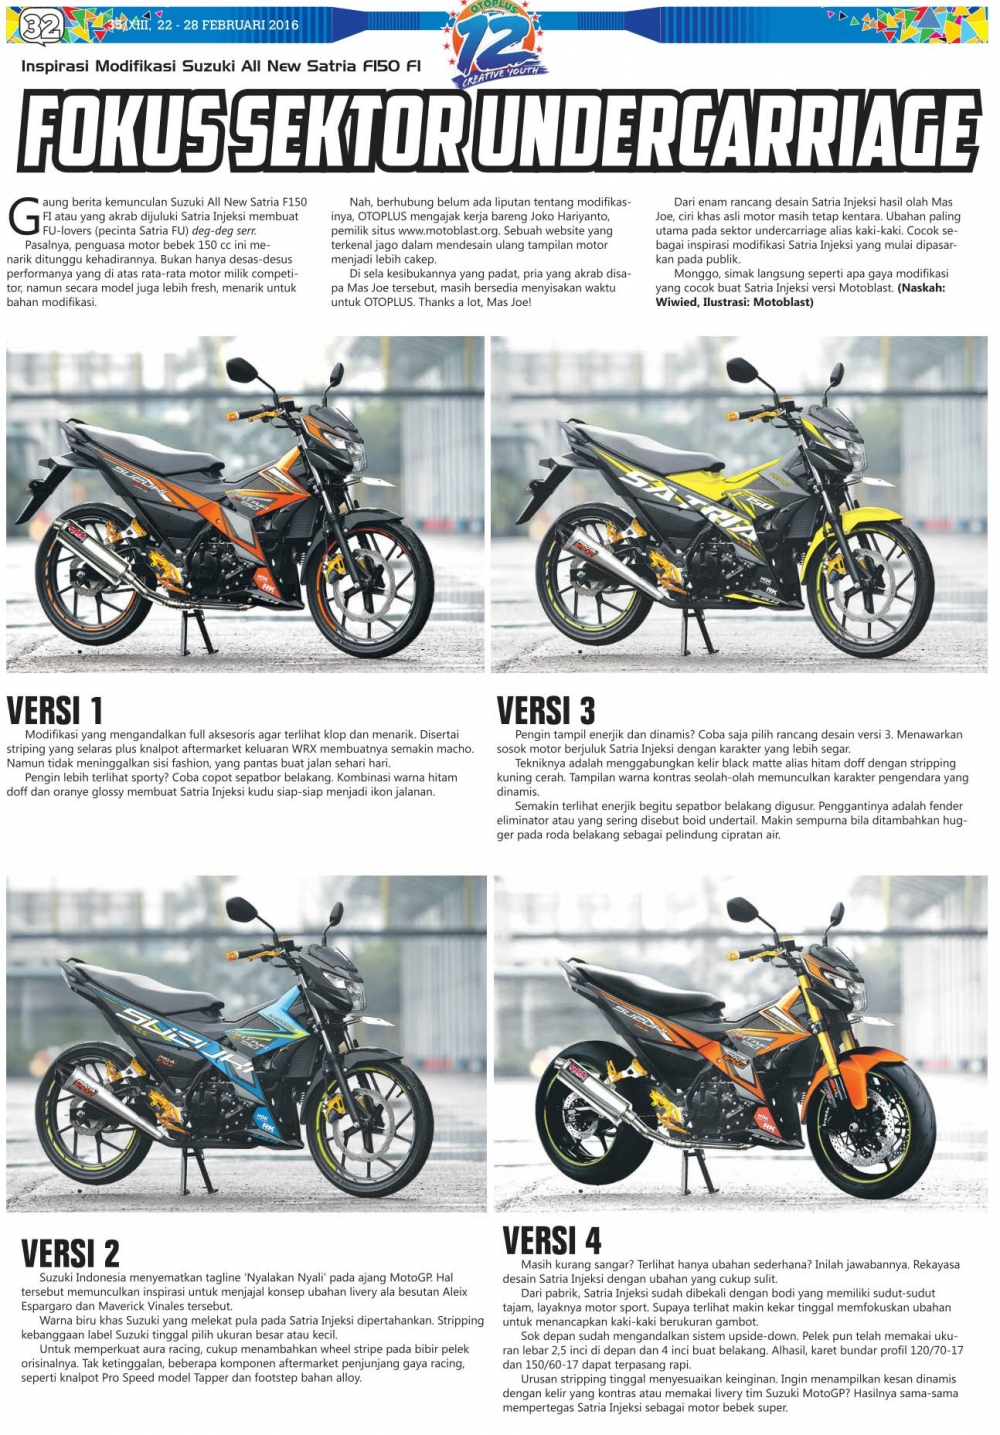 Mot so version do cua Suzuki Satria F150 FI 2016 - 3